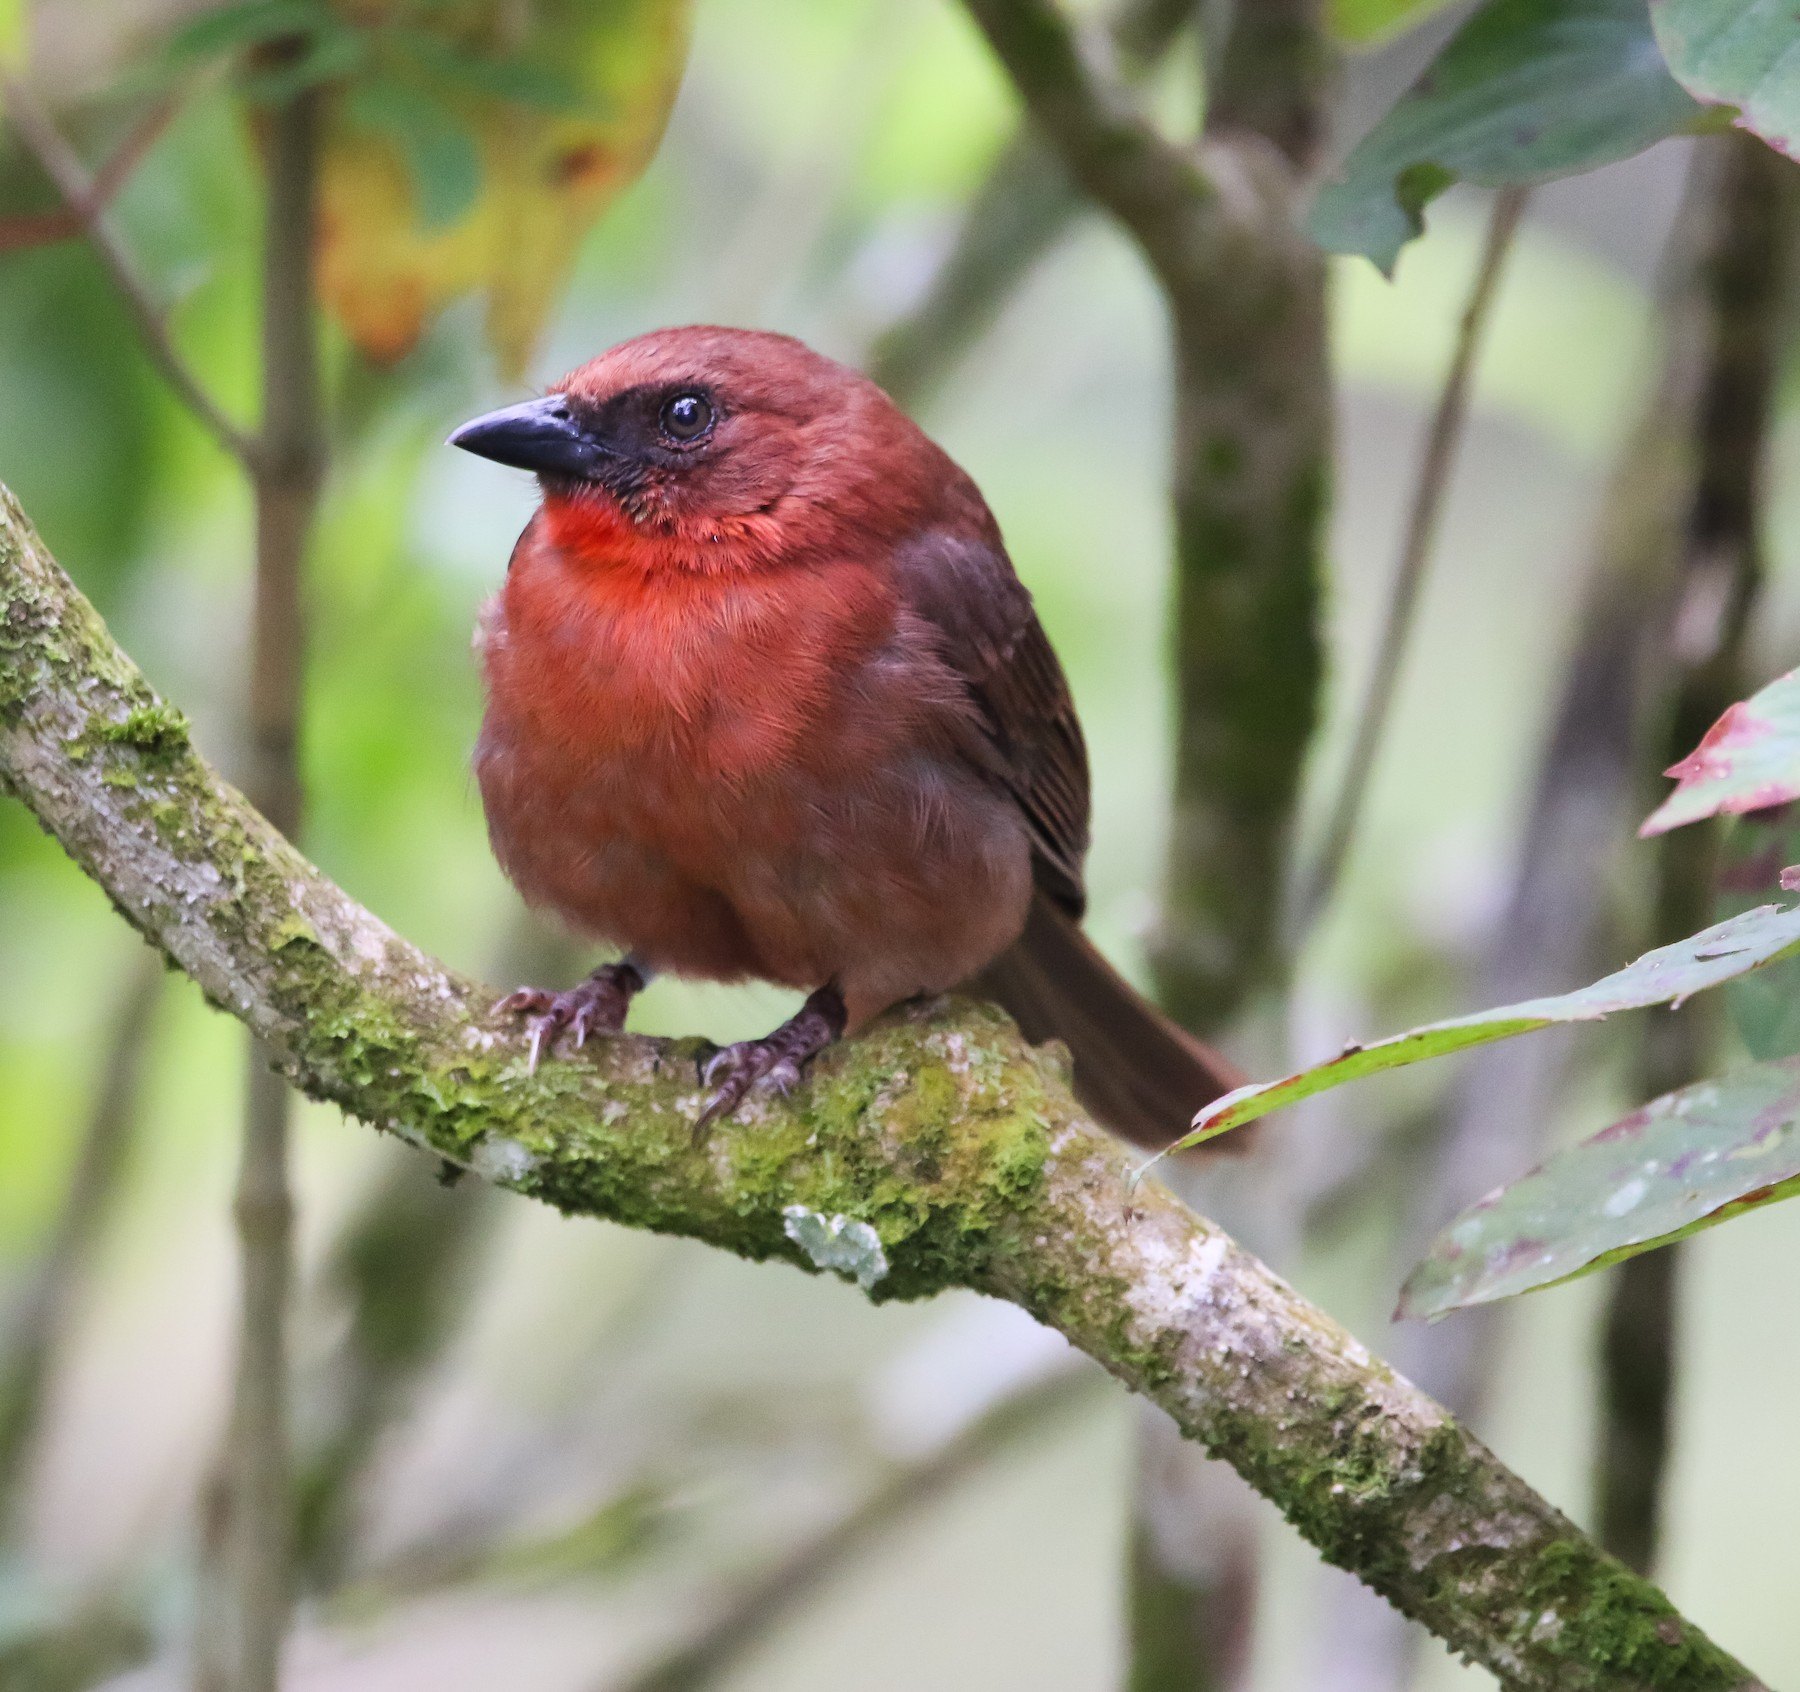 Red-throated Ant-Tanager - Isaias morataya